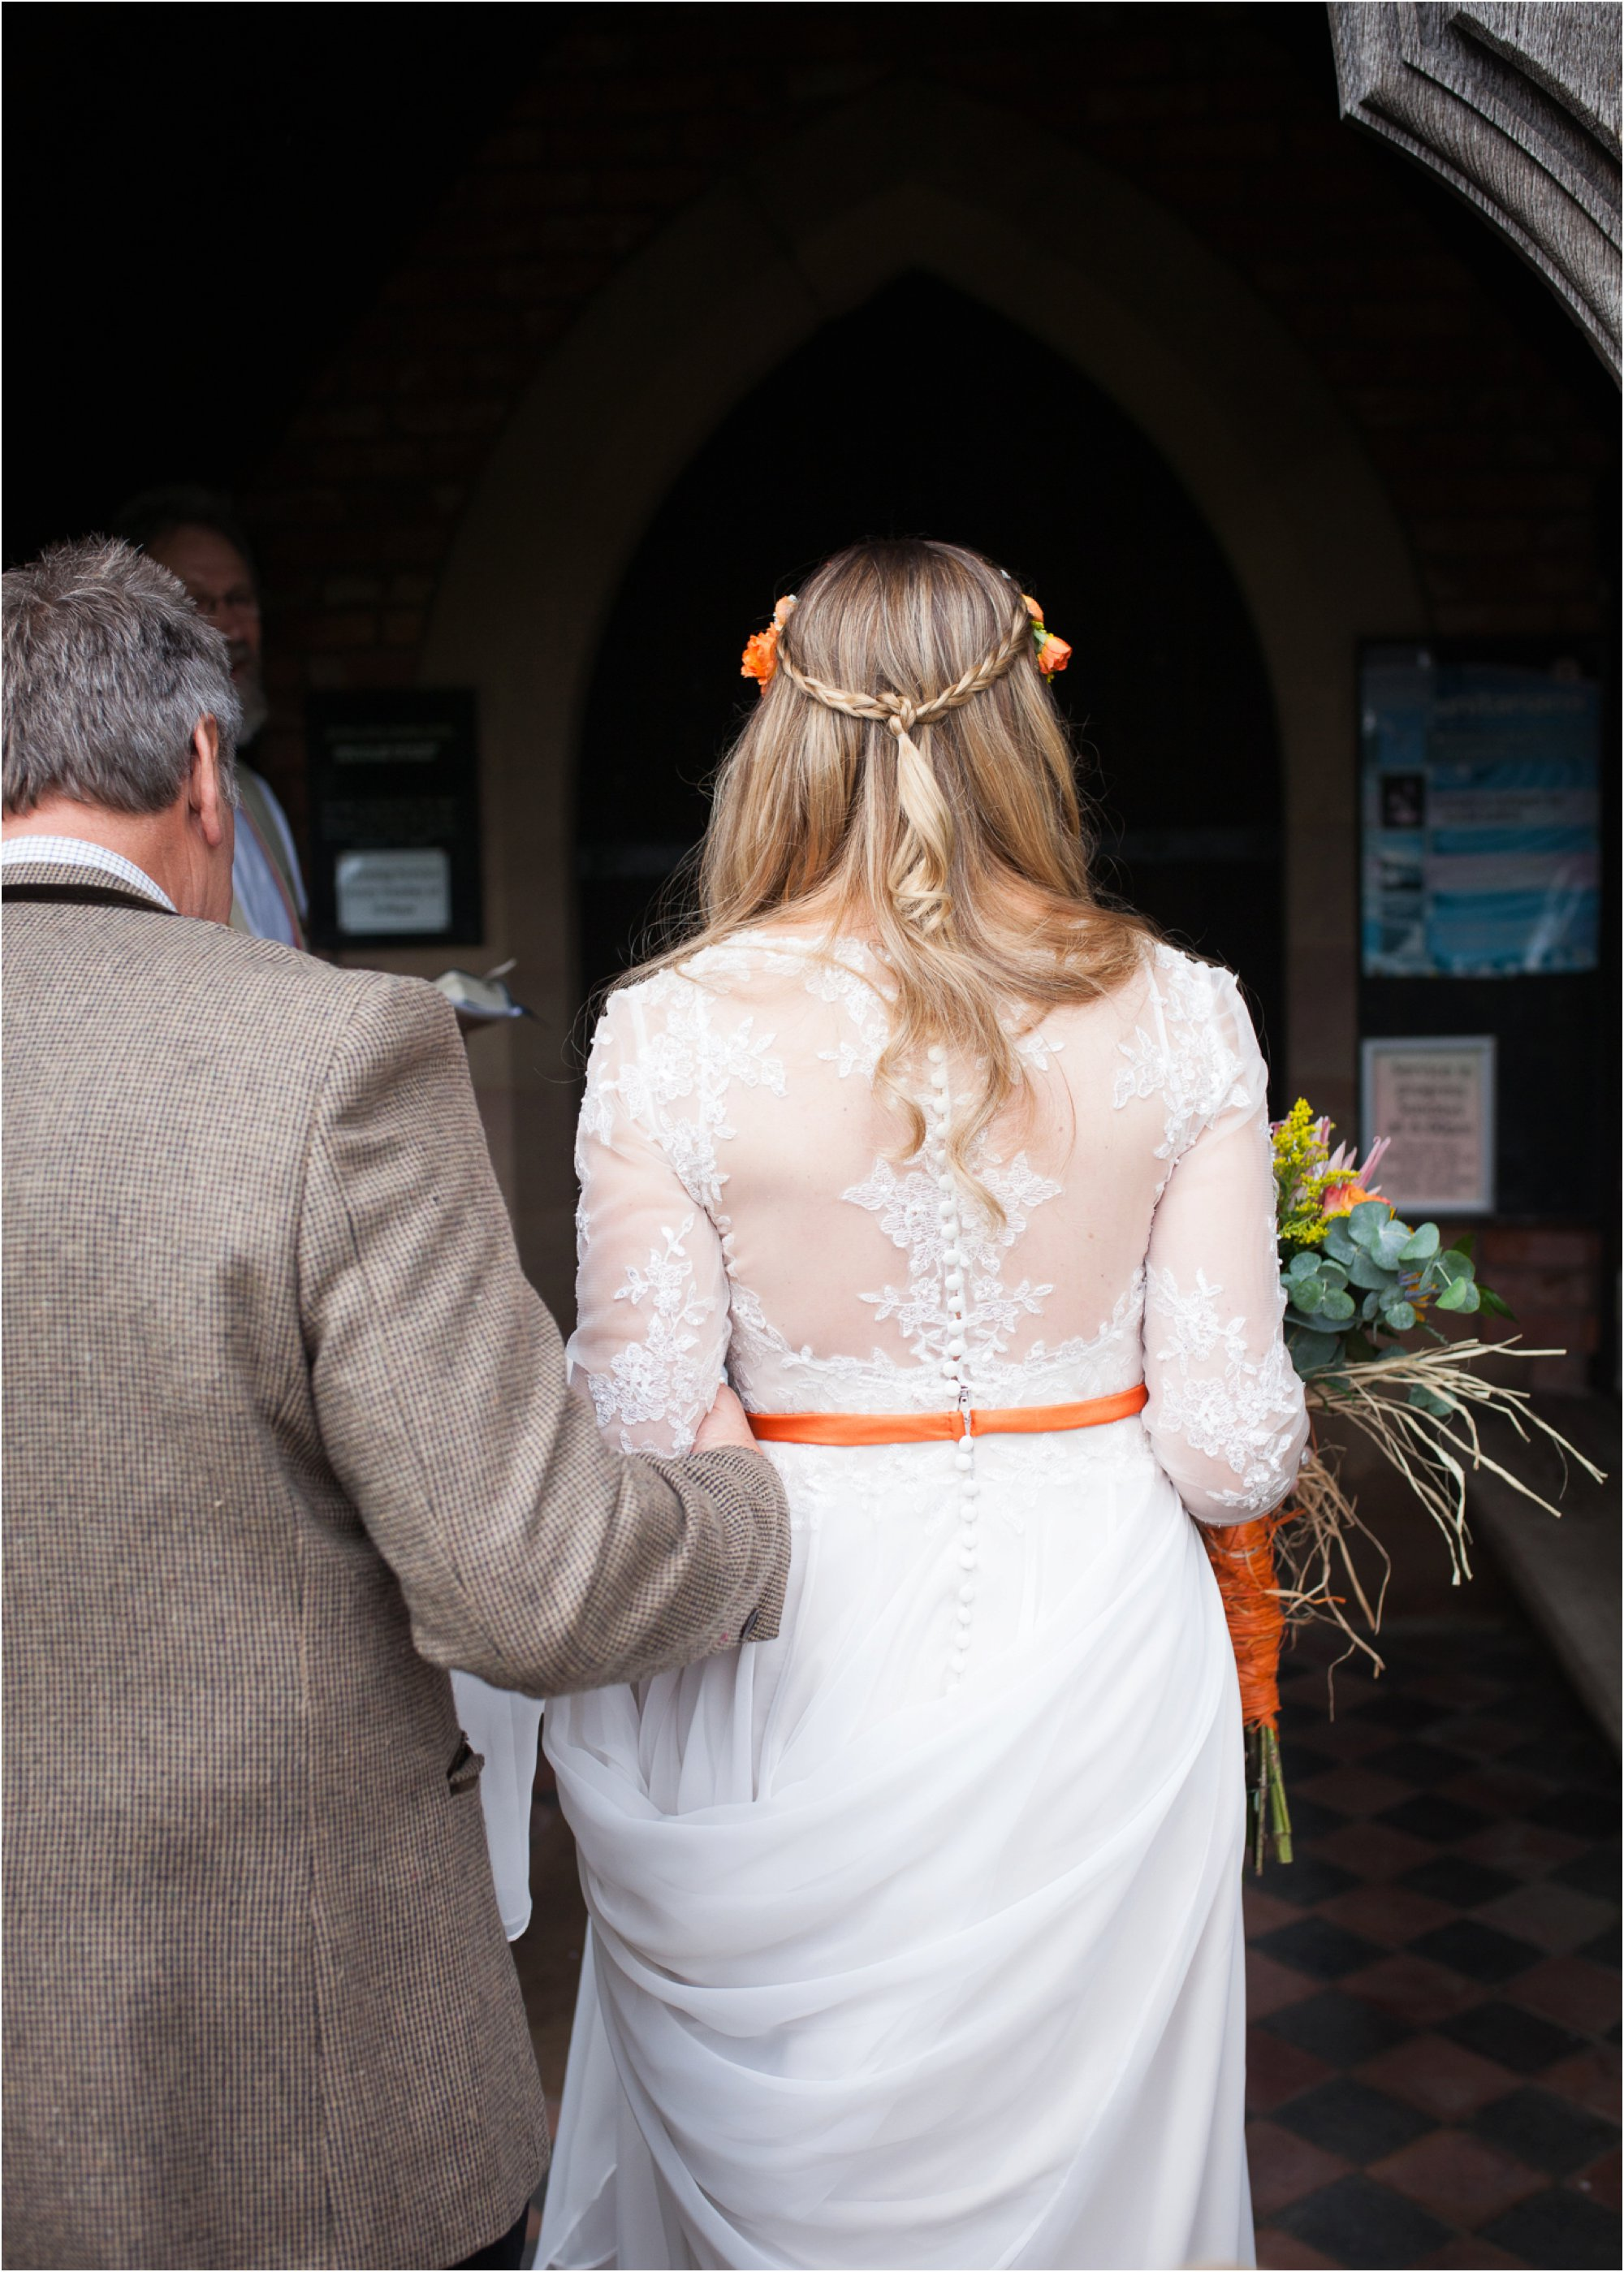 Styal_Wedding_Wilmslow_Cheshire_Autumn_Colourful_photography_0080.jpg